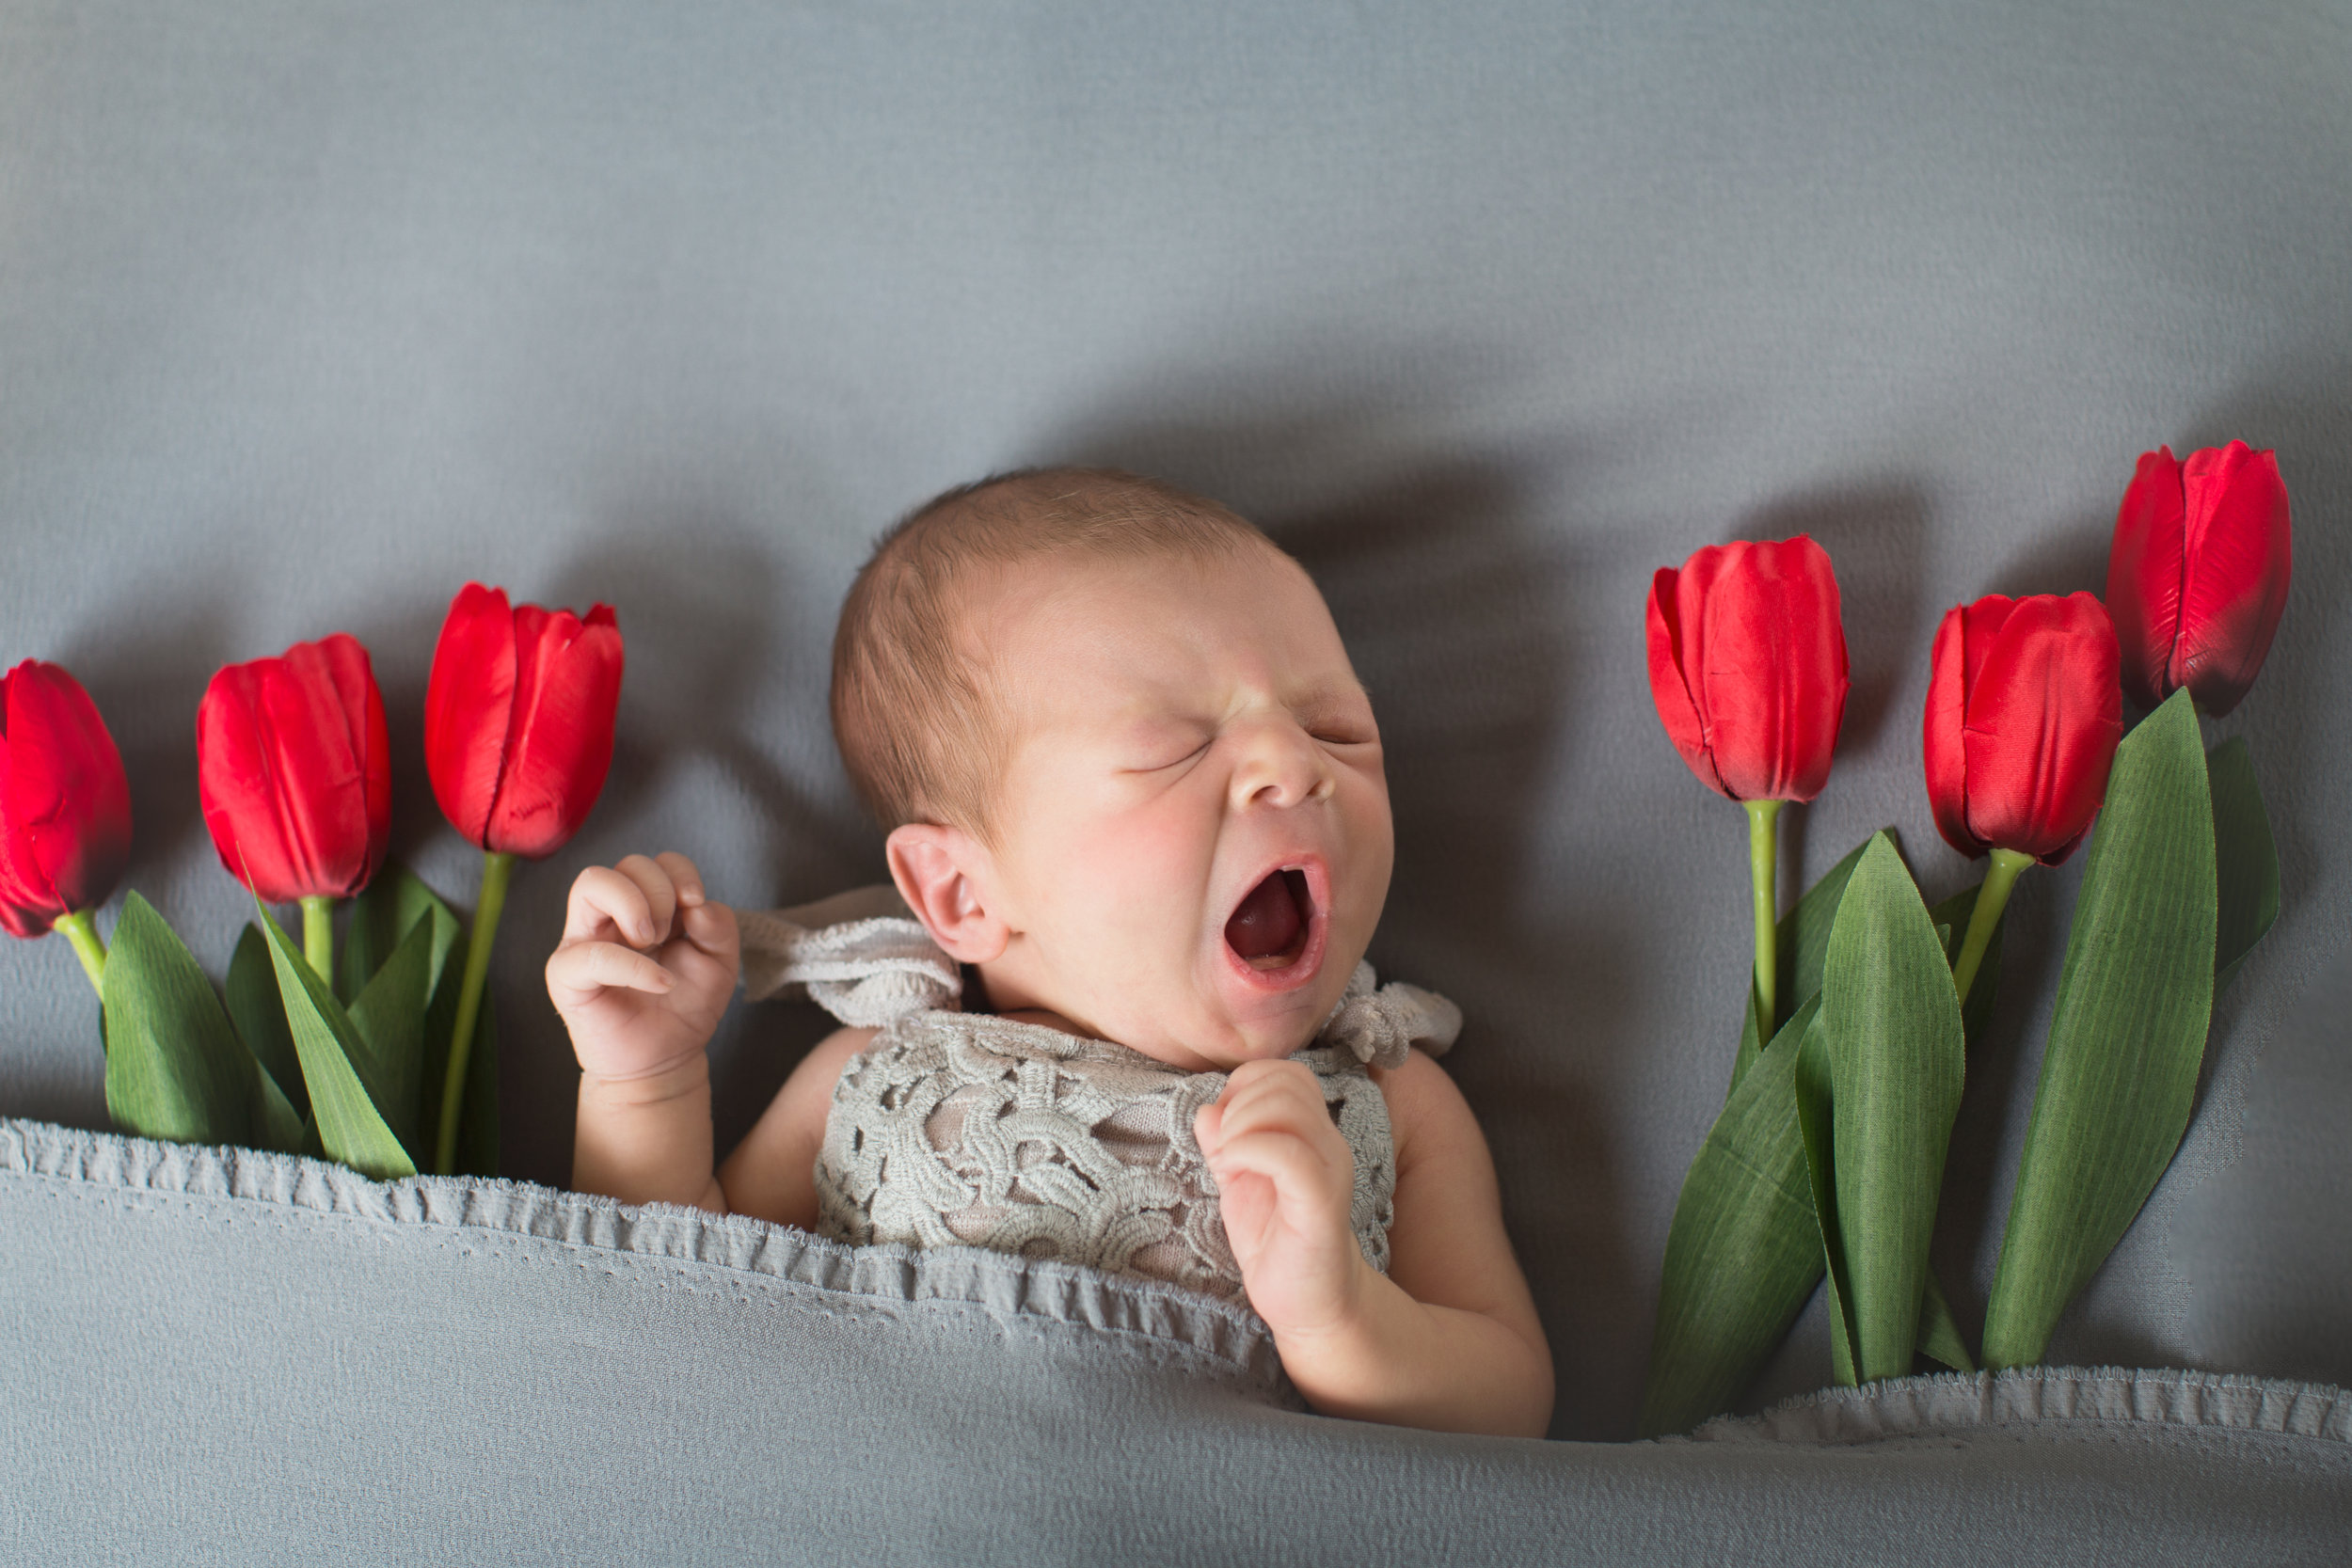 Sweet little baby girl yawning on a beanbag with tulips beside her. Calgary Newborn Photographer - Milashka Photography